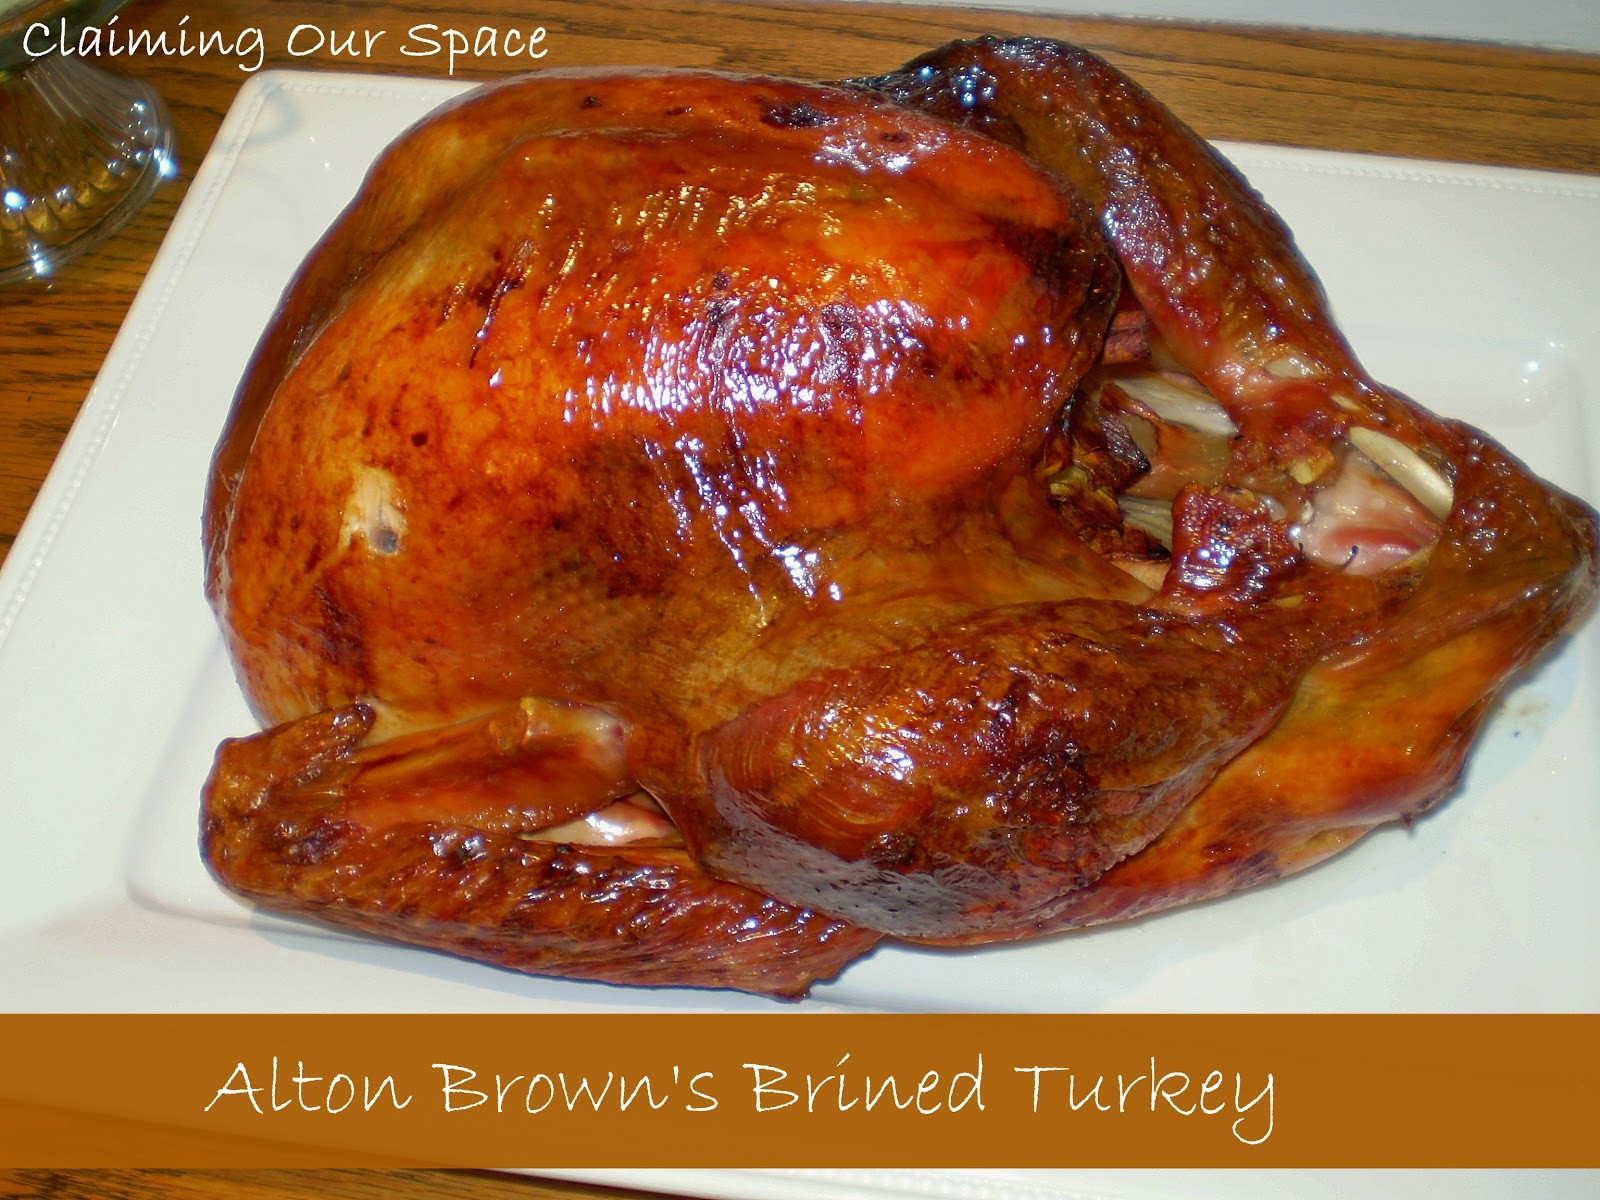 Alton Brown Thanksgiving Turkey  Claiming Our Space Thanksgiving Treats and Fall Fun Link